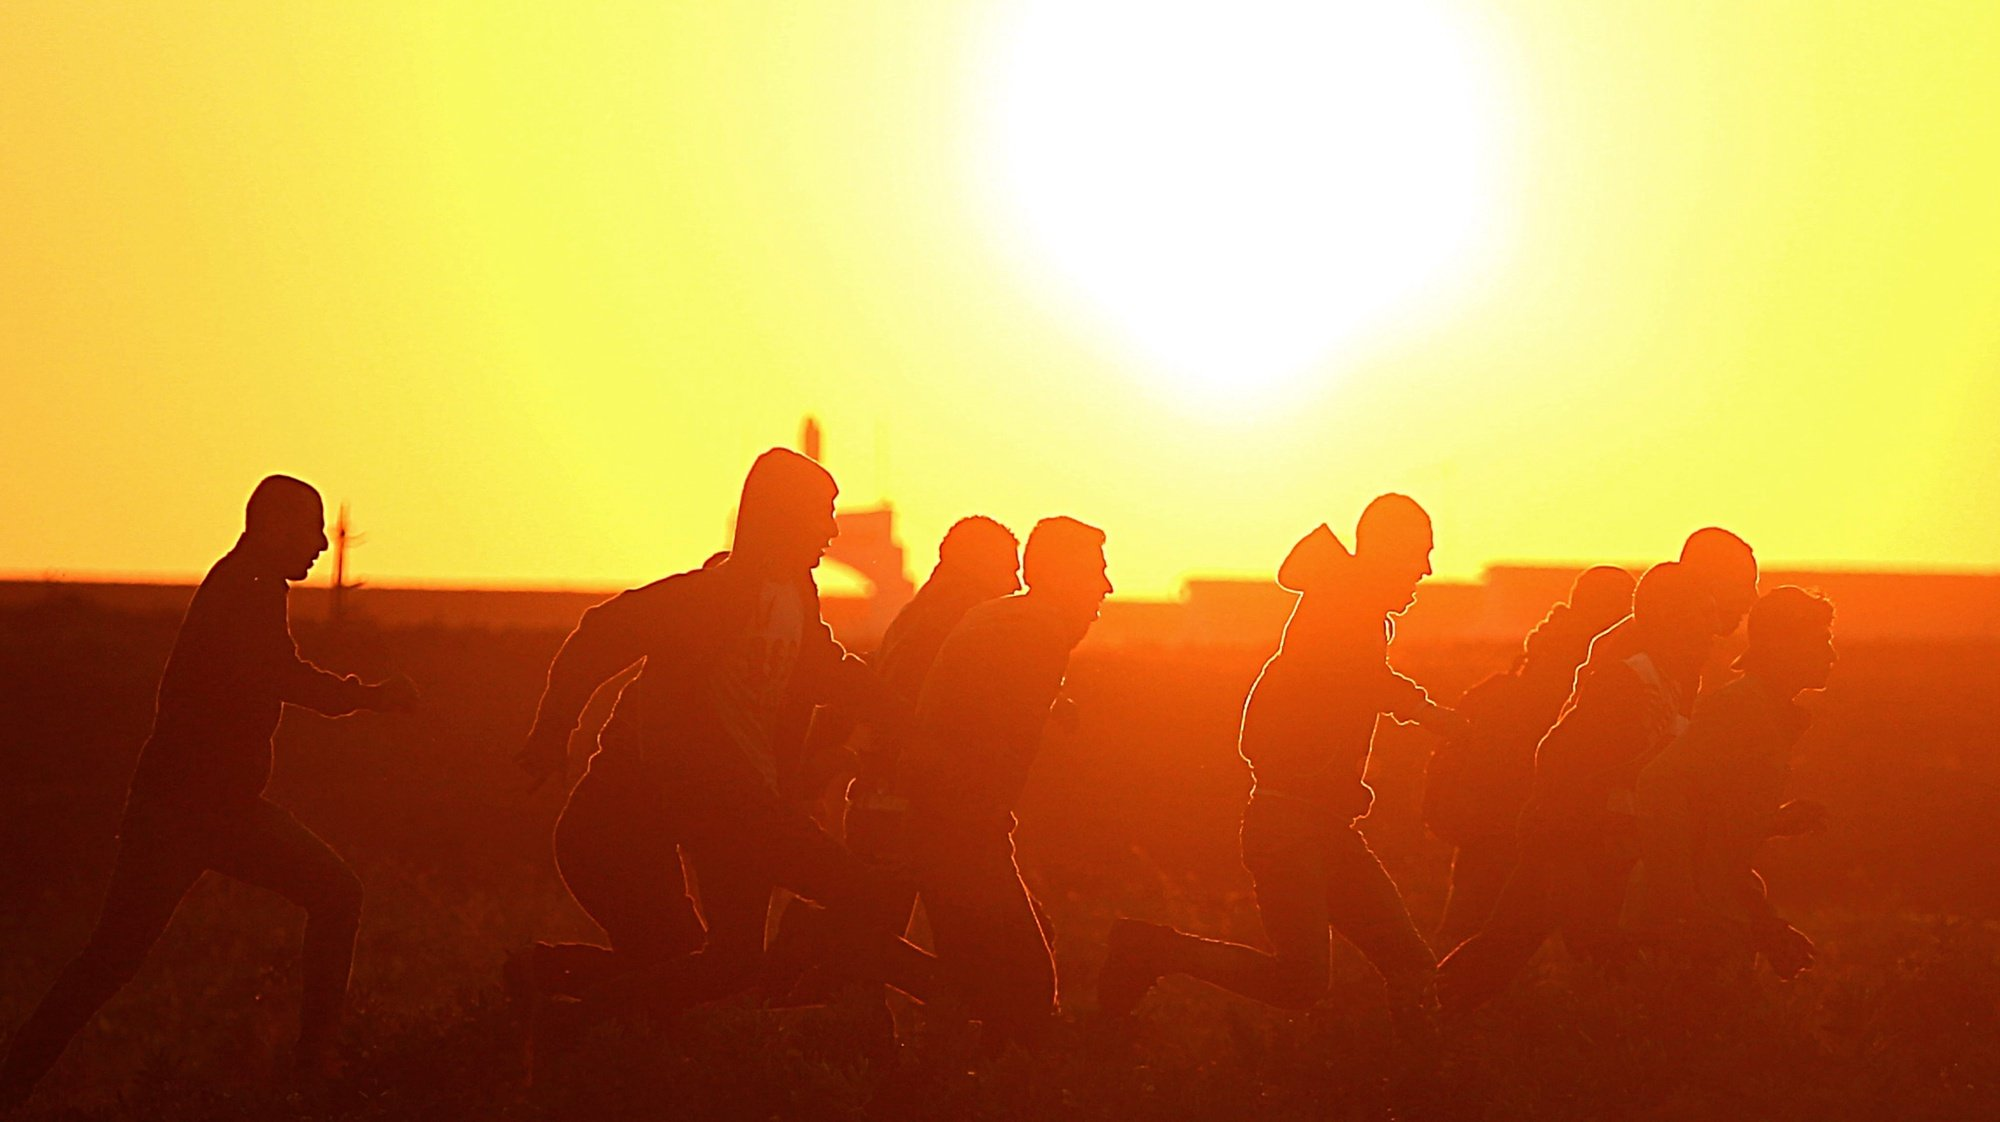 epa05074391 Palestinian youths run for cover at sunset during clashes with Israeli troops along the border between Israel and Gaza Strip in eastern Gaza, 18 December 2015.  EPA/MOHAMMED SABER